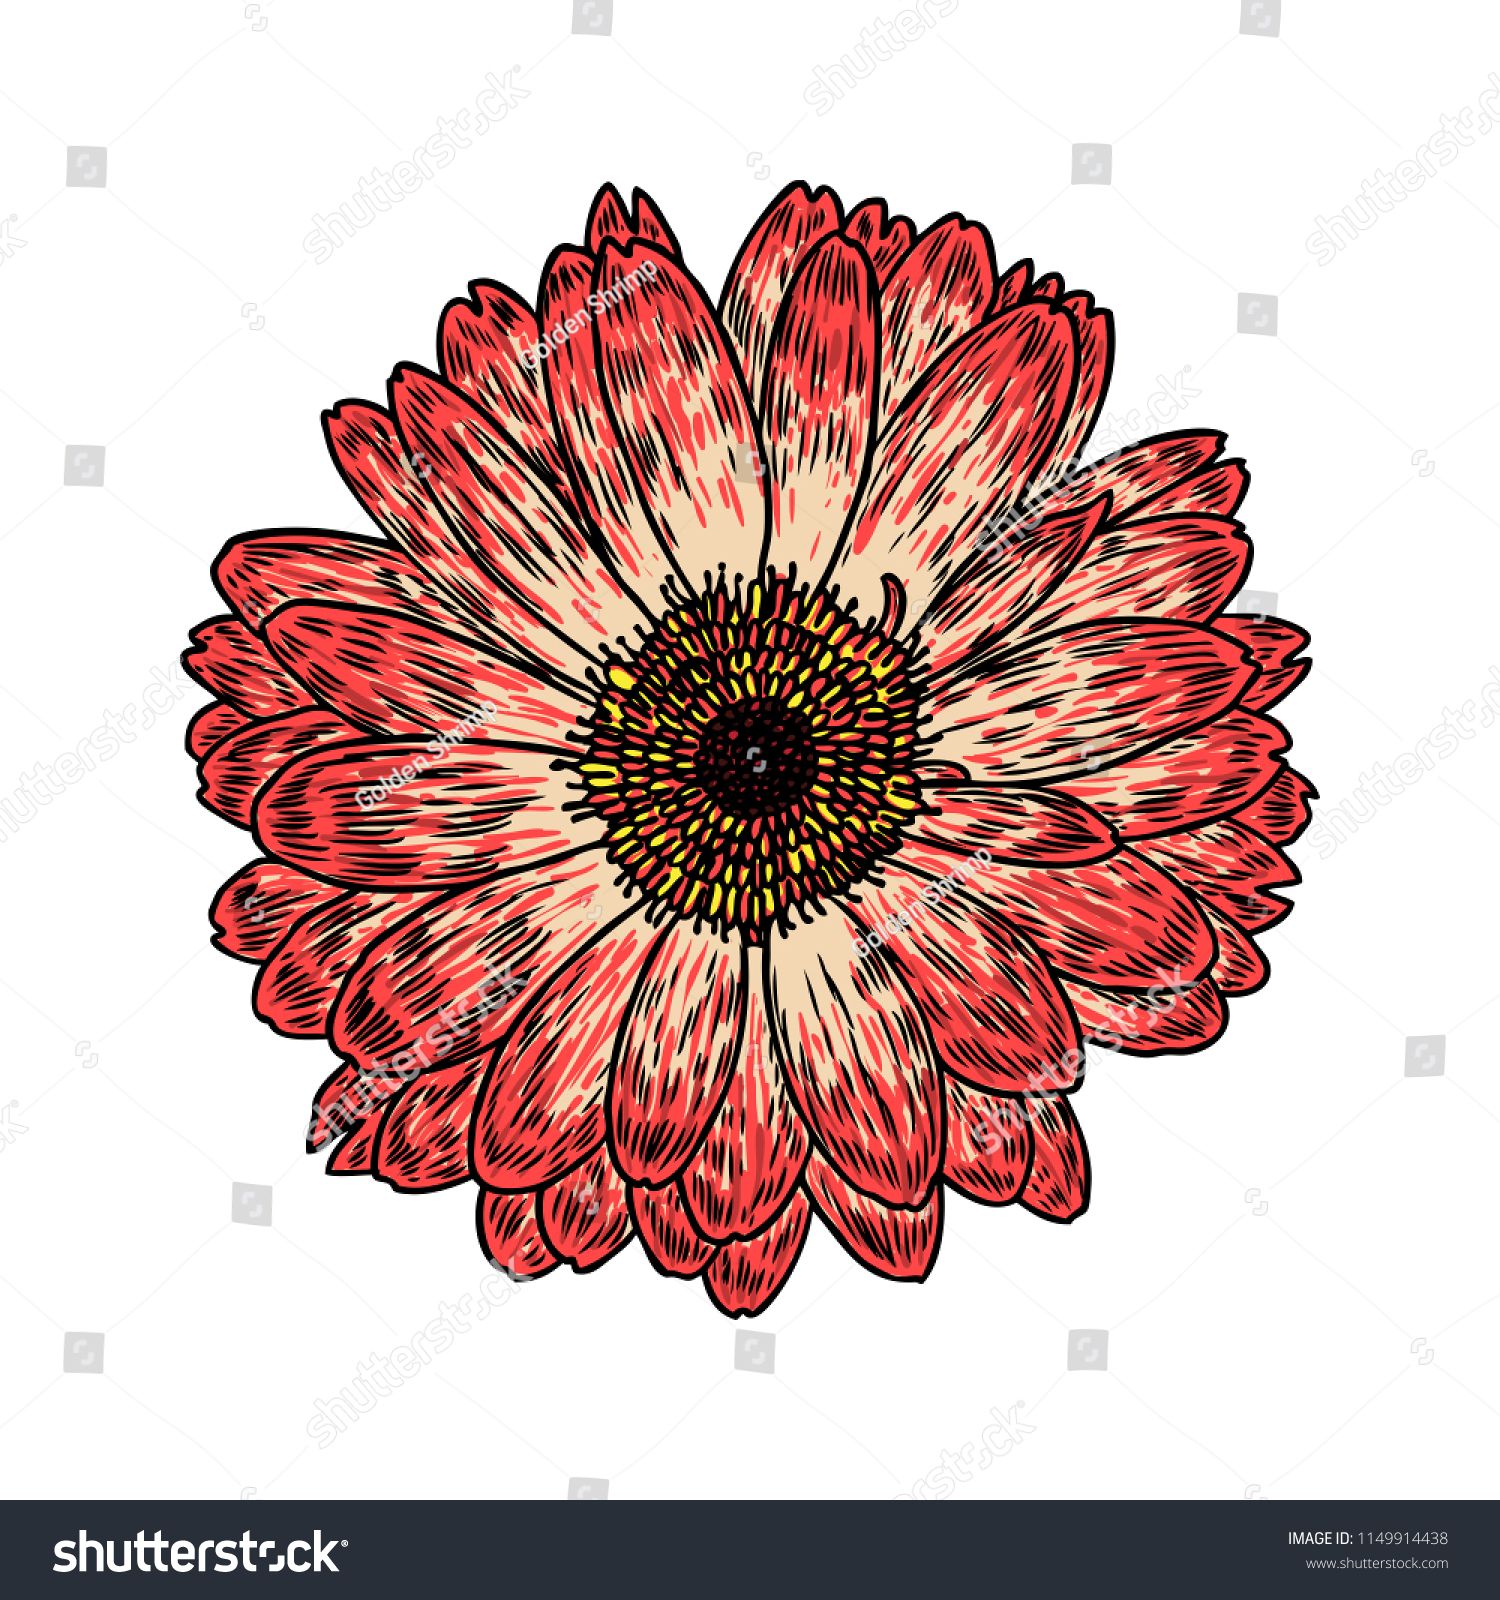 Daisy Floral Botany Sketch Daisy Flower Stock Vector Royalty Free